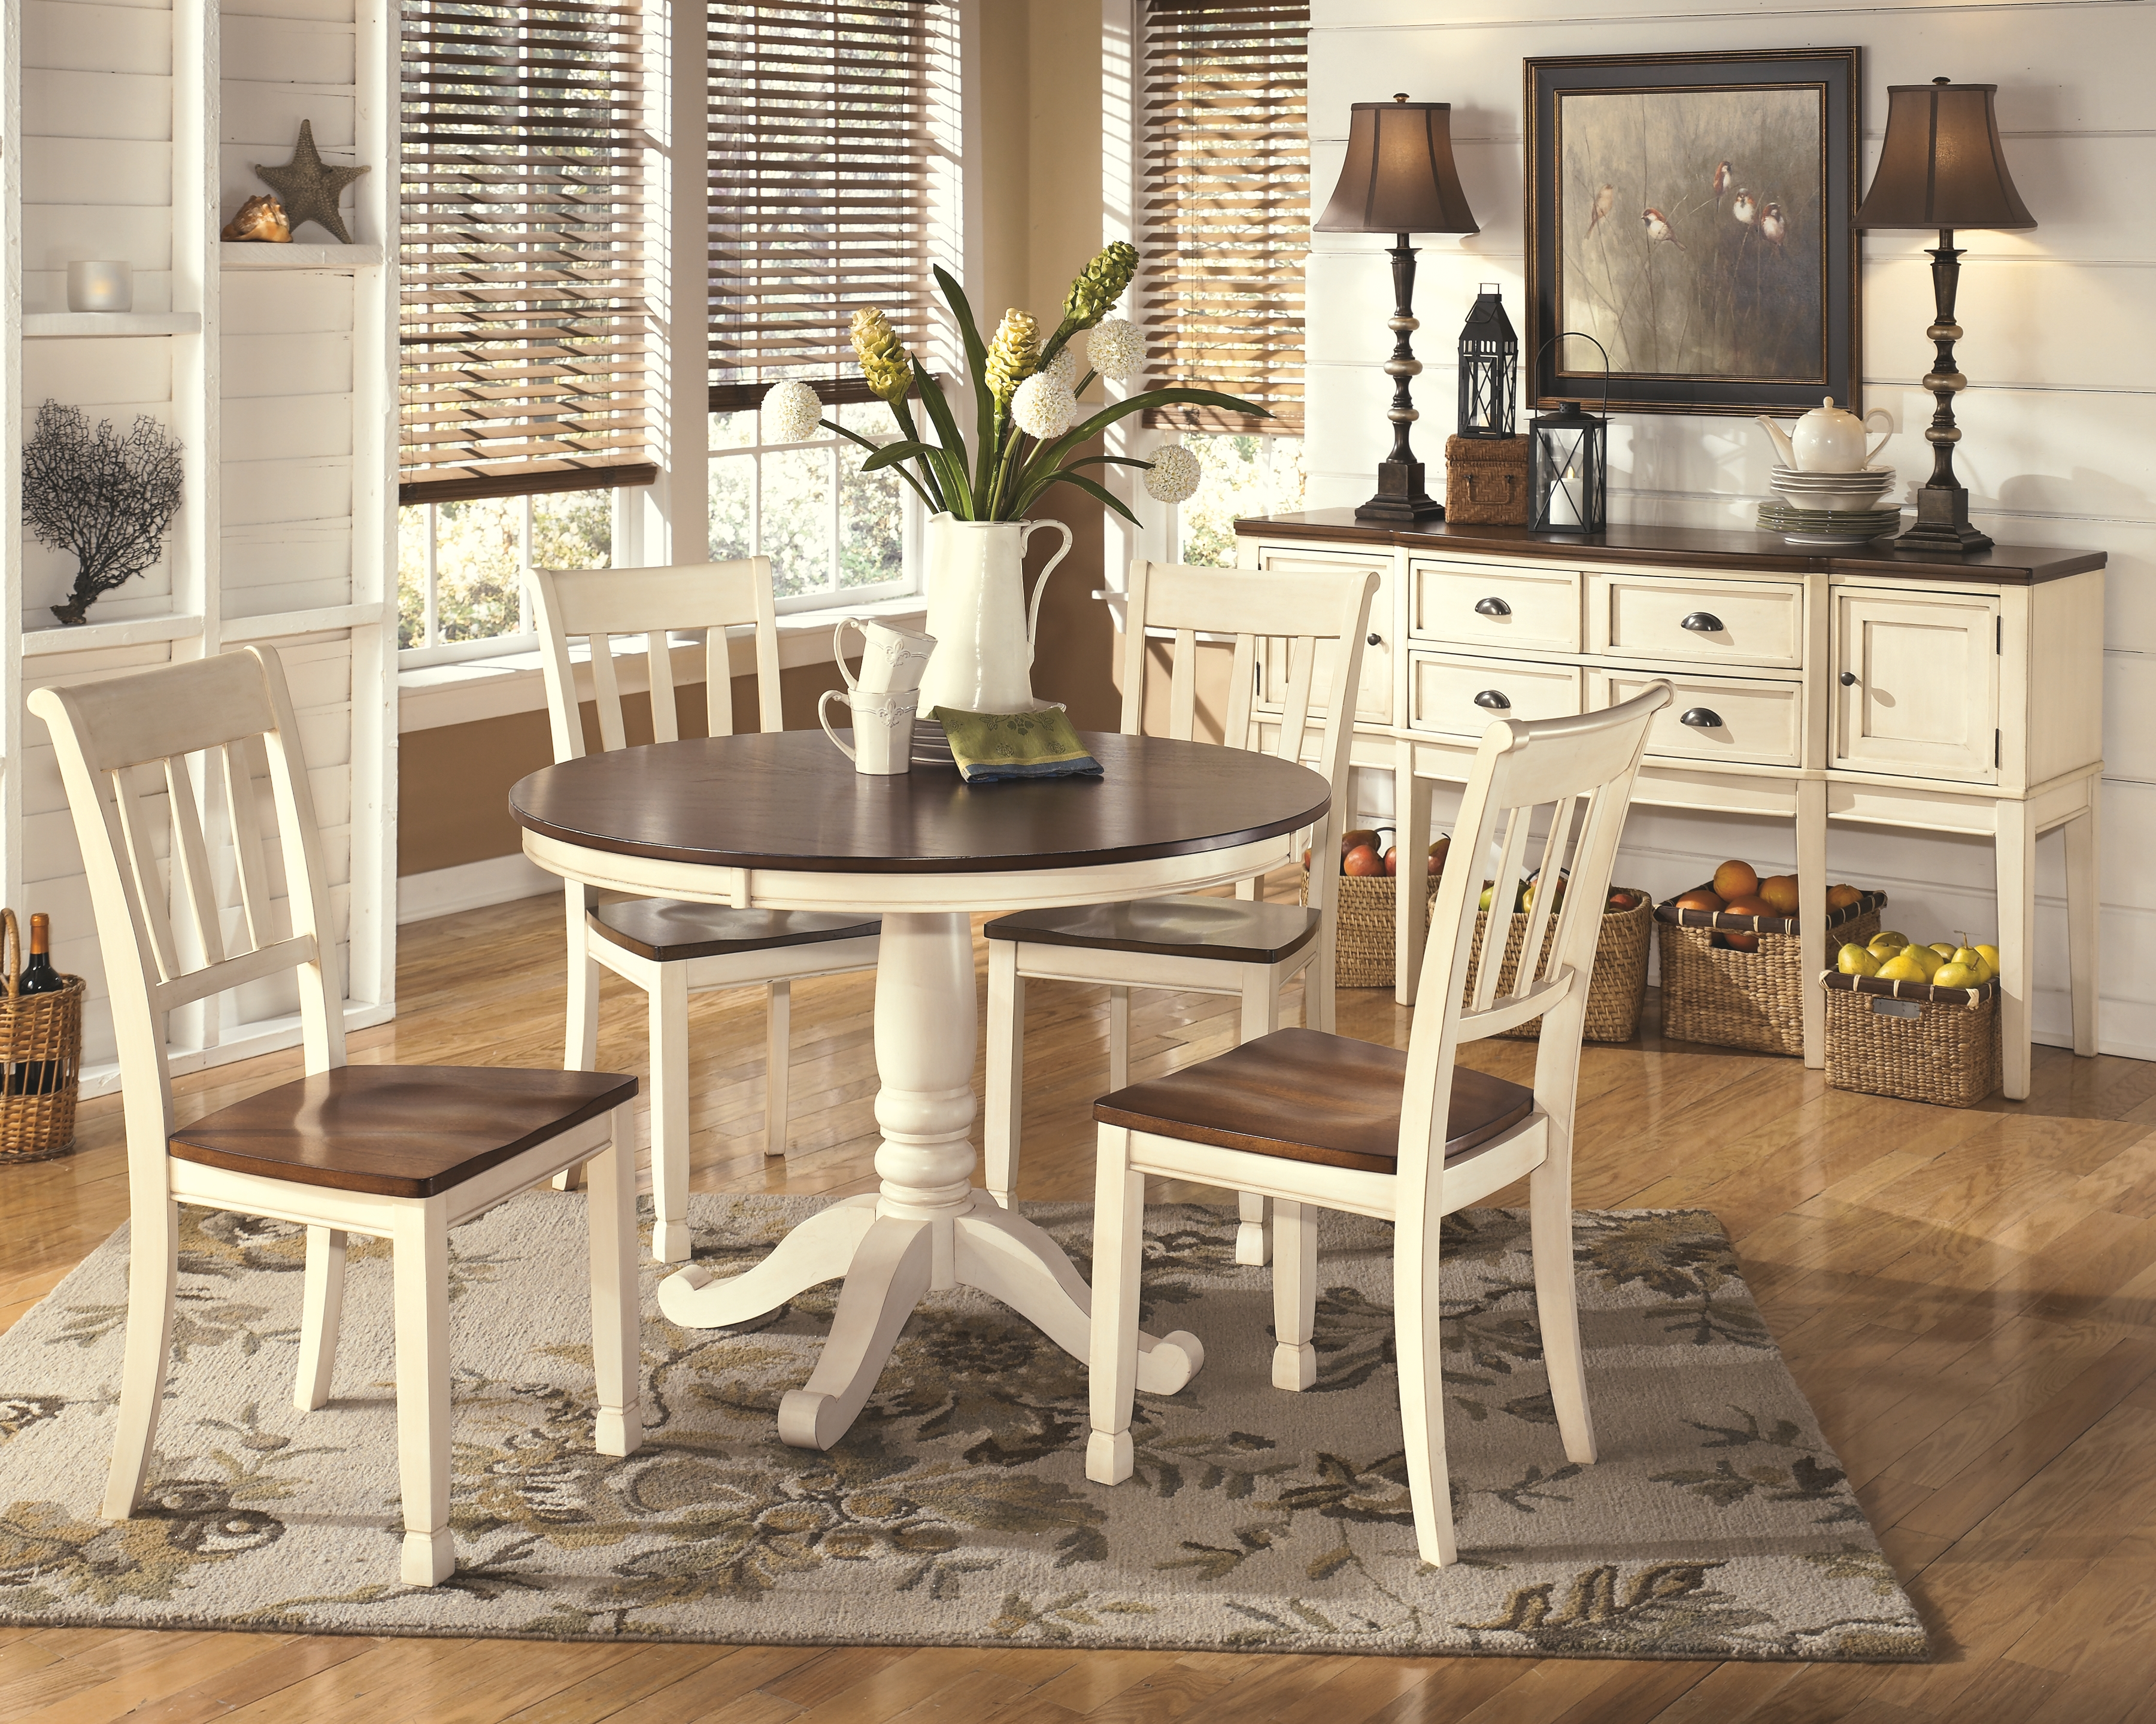 Whitesburg Dining Room Chair D583 02 By, Whitesburg Dining Room Chair